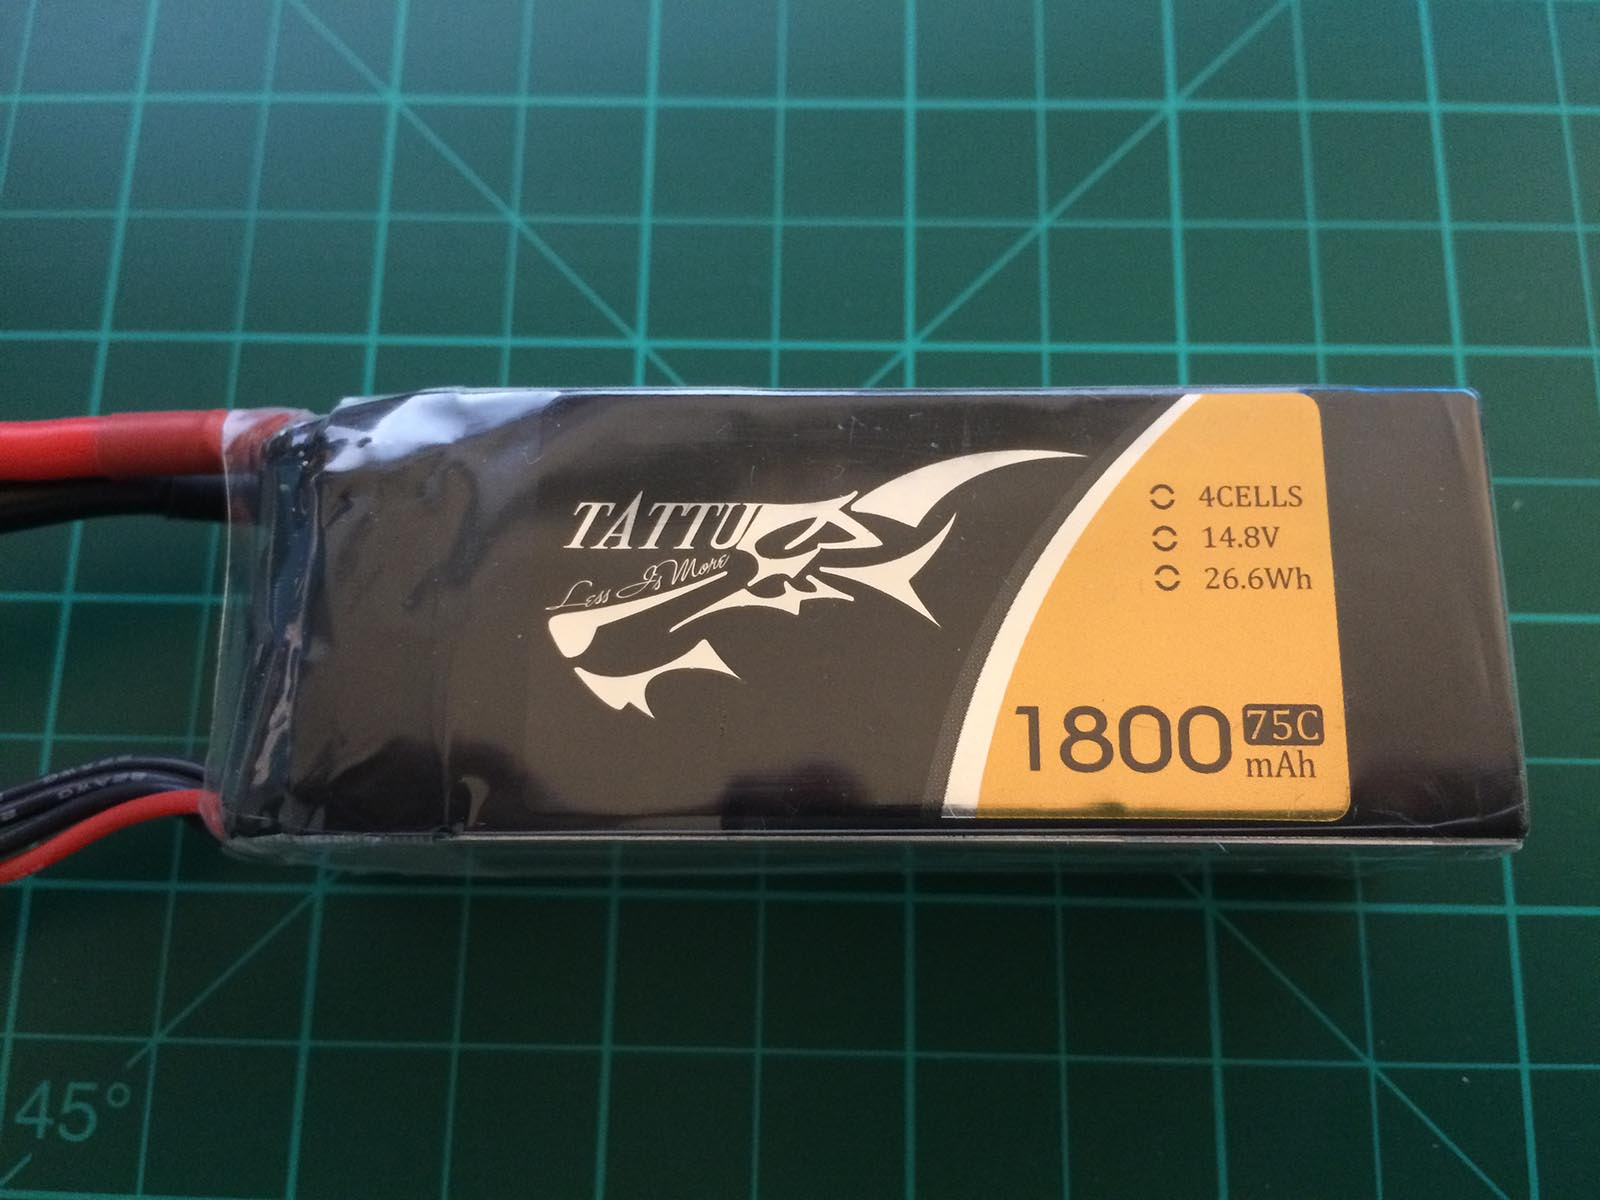 Tattu 4S 1800 mah 75C - Front side